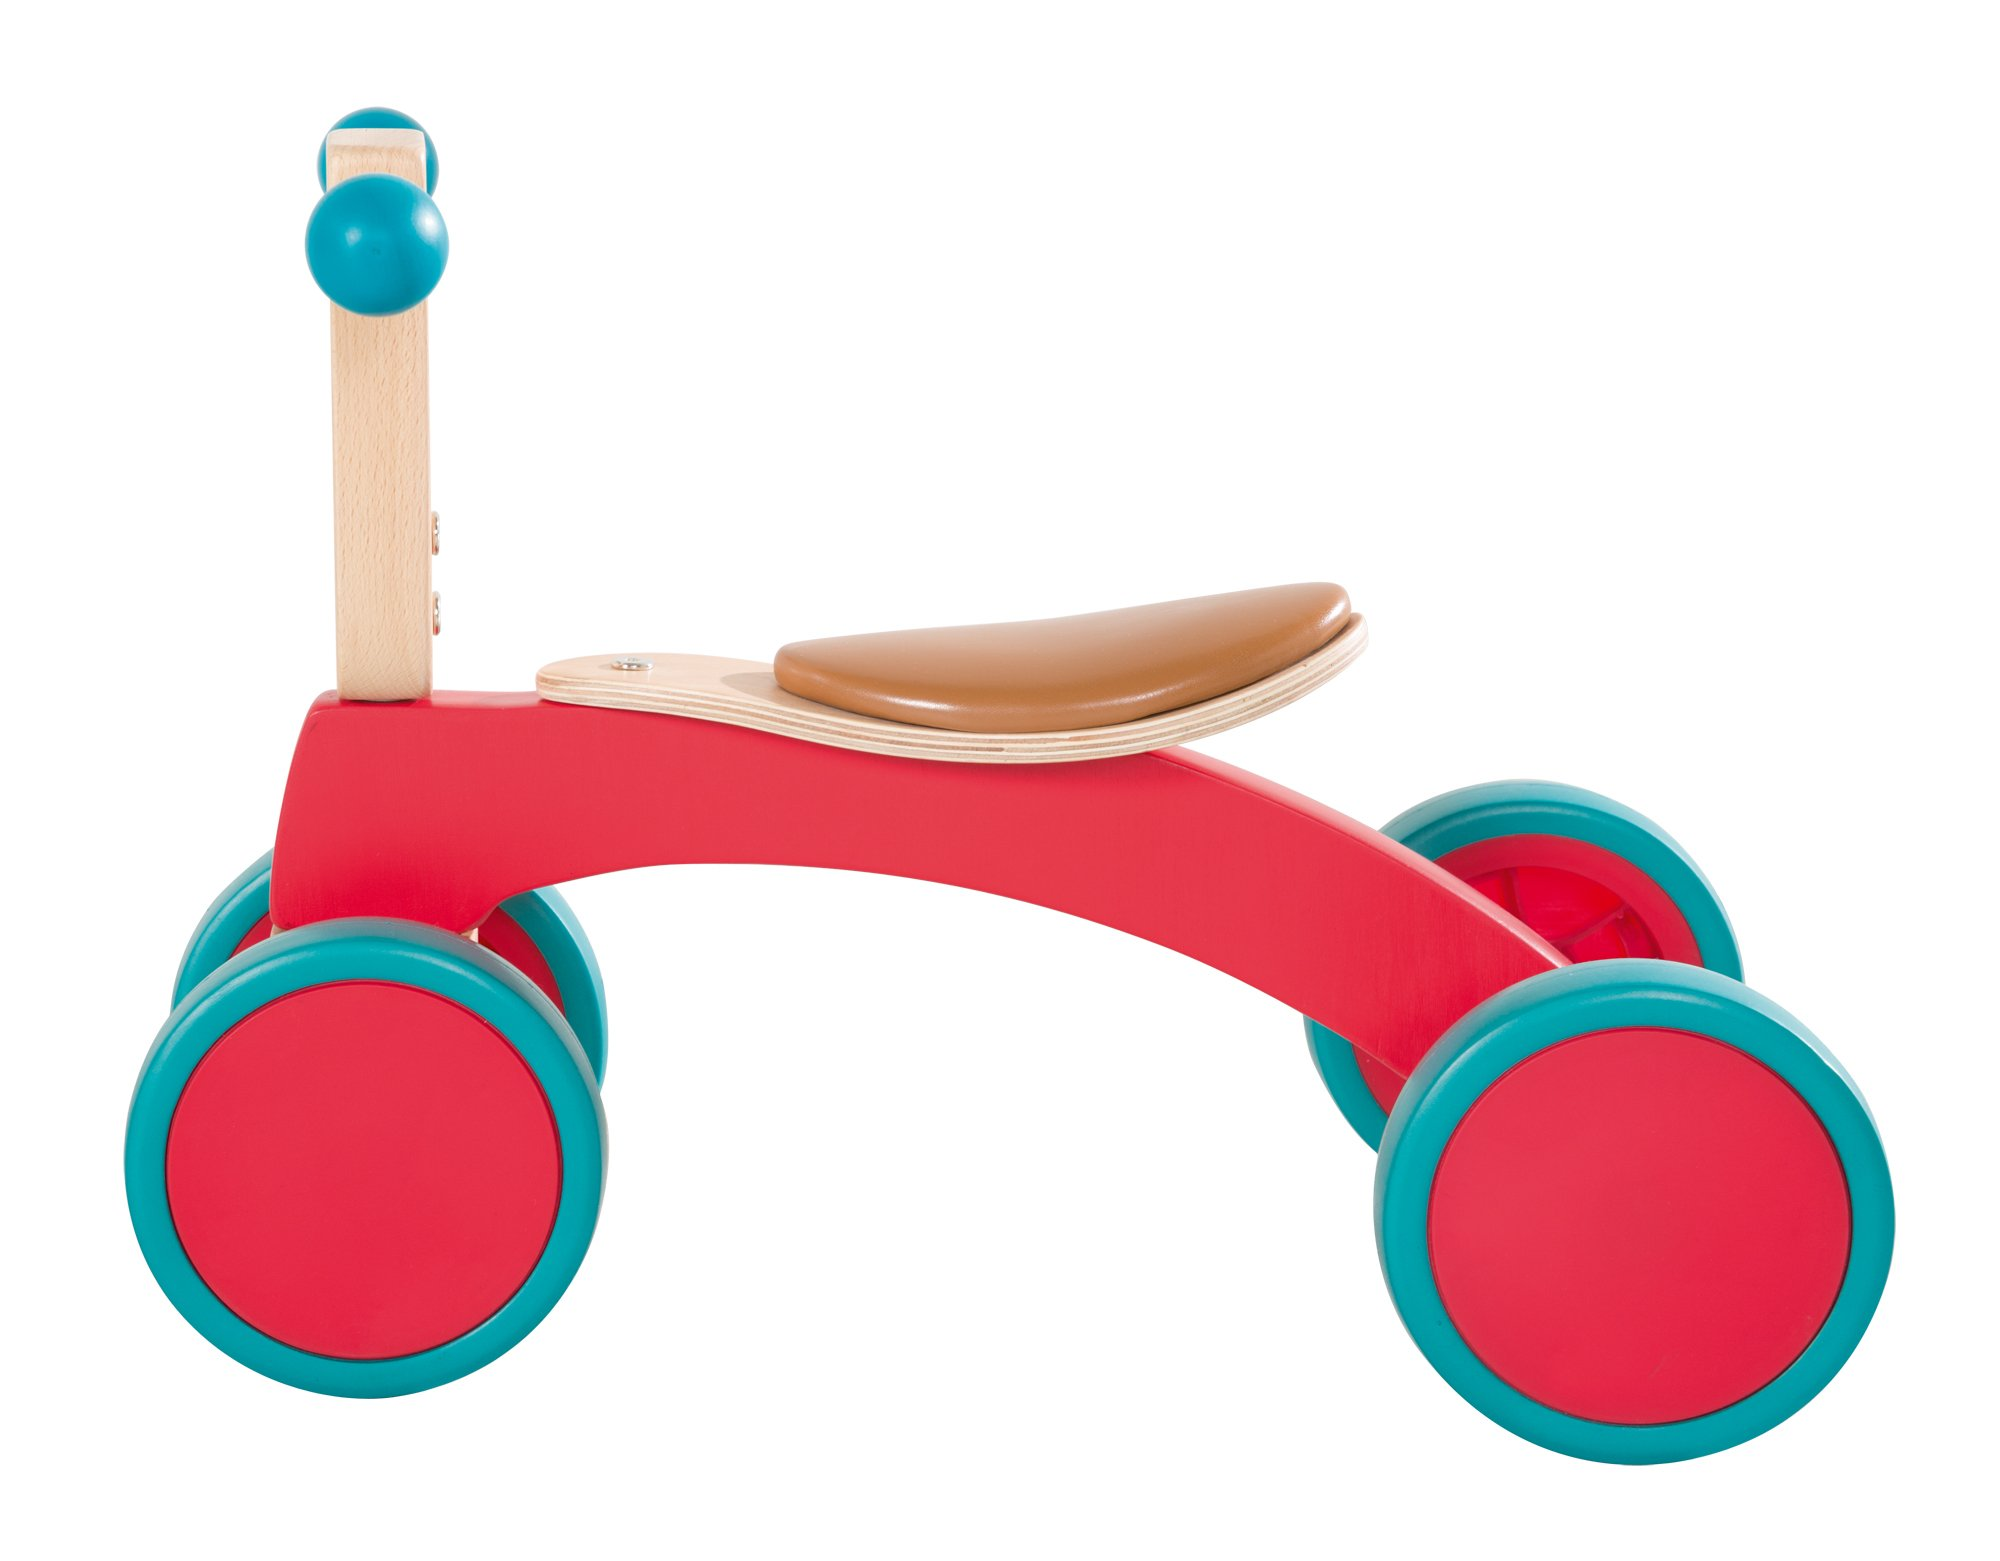 roba Wooden Vehicle for Toddlers from 1Year Old  This Roba wooden vehicle is the ideal learner's bicycle from toddlers of 12months and over to learn about balance and body coordination while having fun. The vehicle has a soft padded seat that is 22cm in height, and is suitable for children who are 80cm tall and over. The large coloured rubber tyres made from soft material (won't harm the floor) ensures a secure grip and is easy to move forward – for indoor and outdoor use. 3